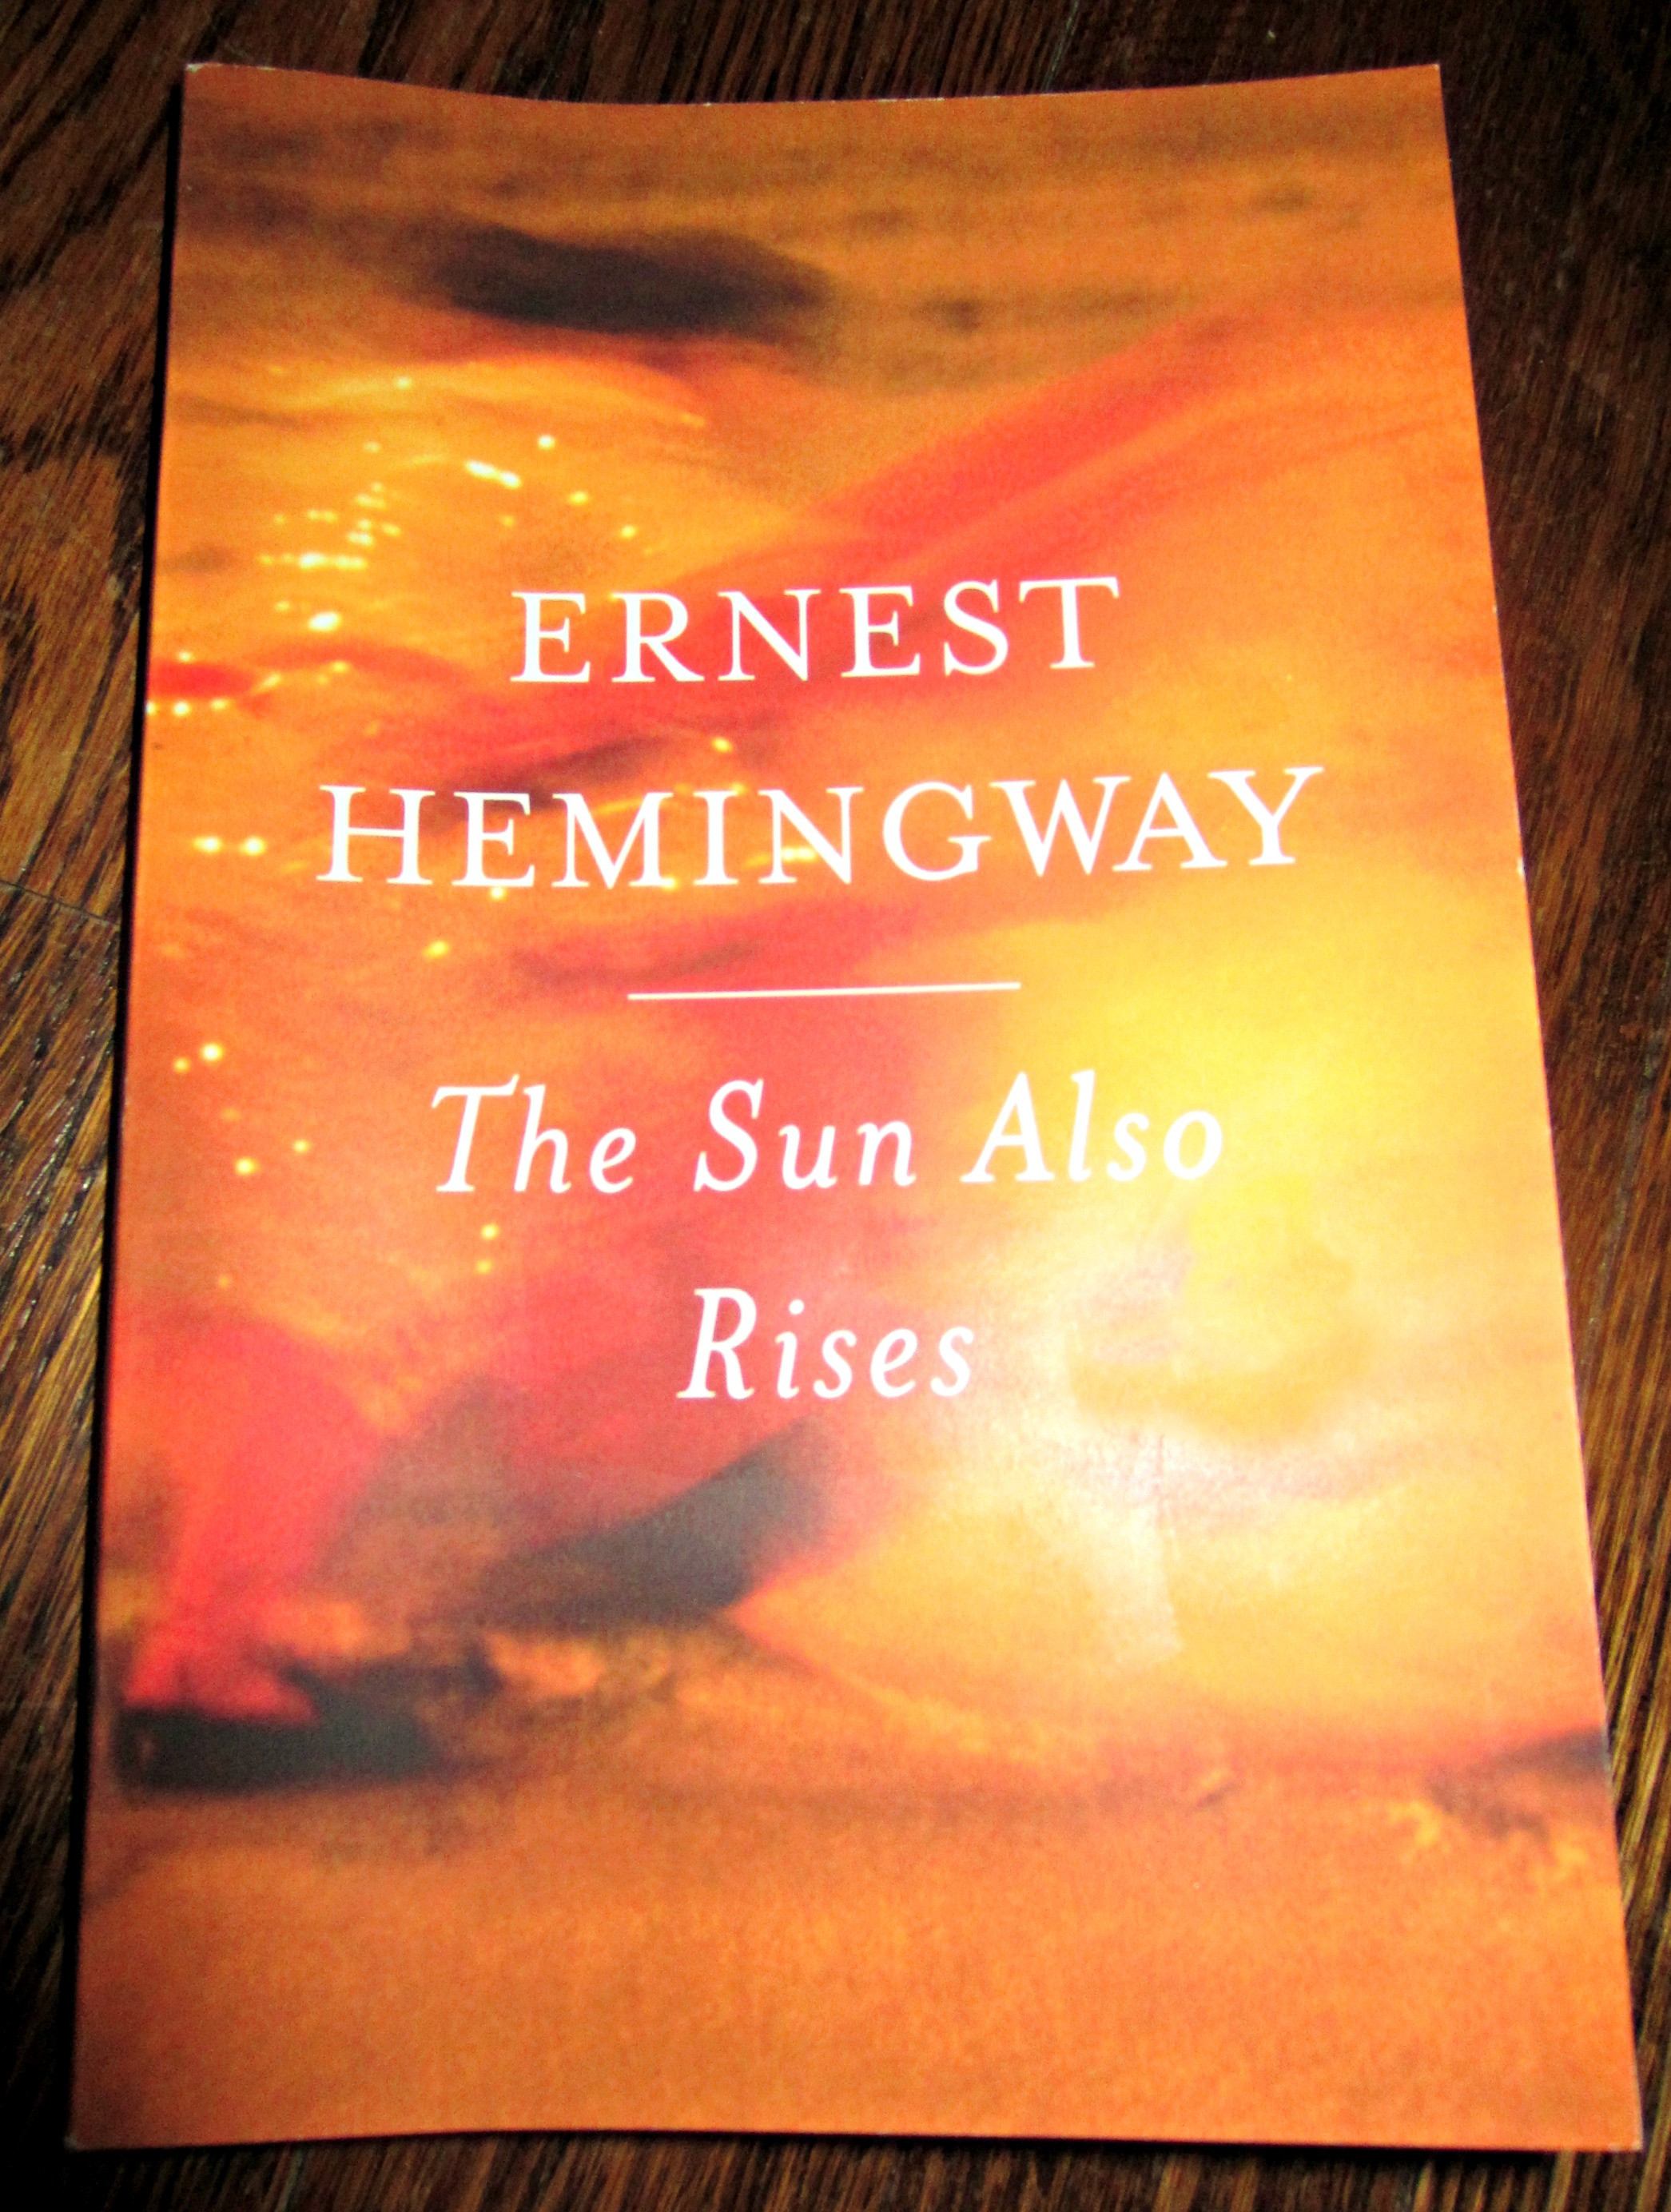 an analysis of the topic of the sun also rises by ernest hemingway Booker's seven basic plots analysis: voyage and return originally published in 1926, the sun also rises was ernest hemingway's first big hit.